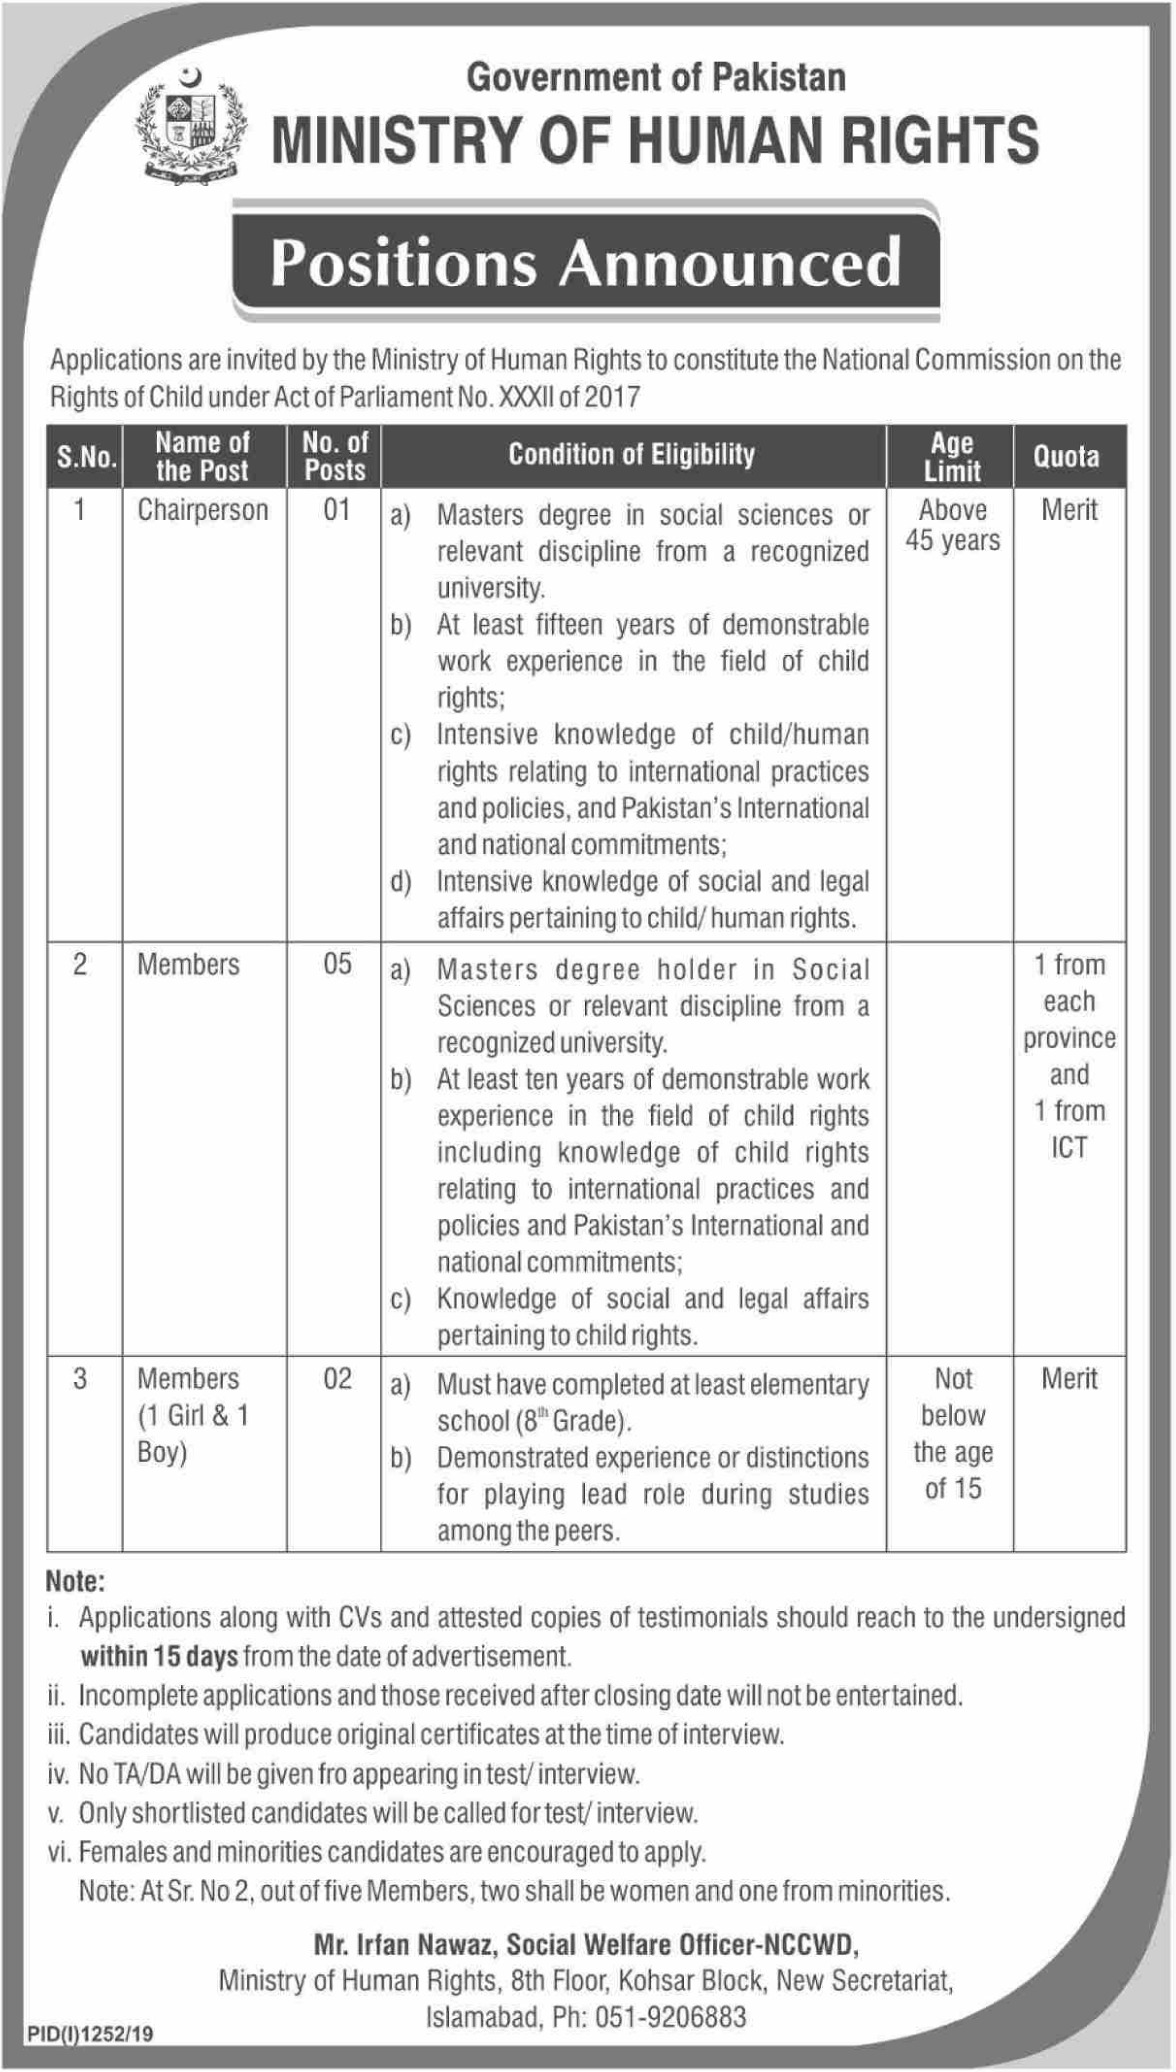 Ministry of Human Rights Jobs 2019 Govt. of Pakistan